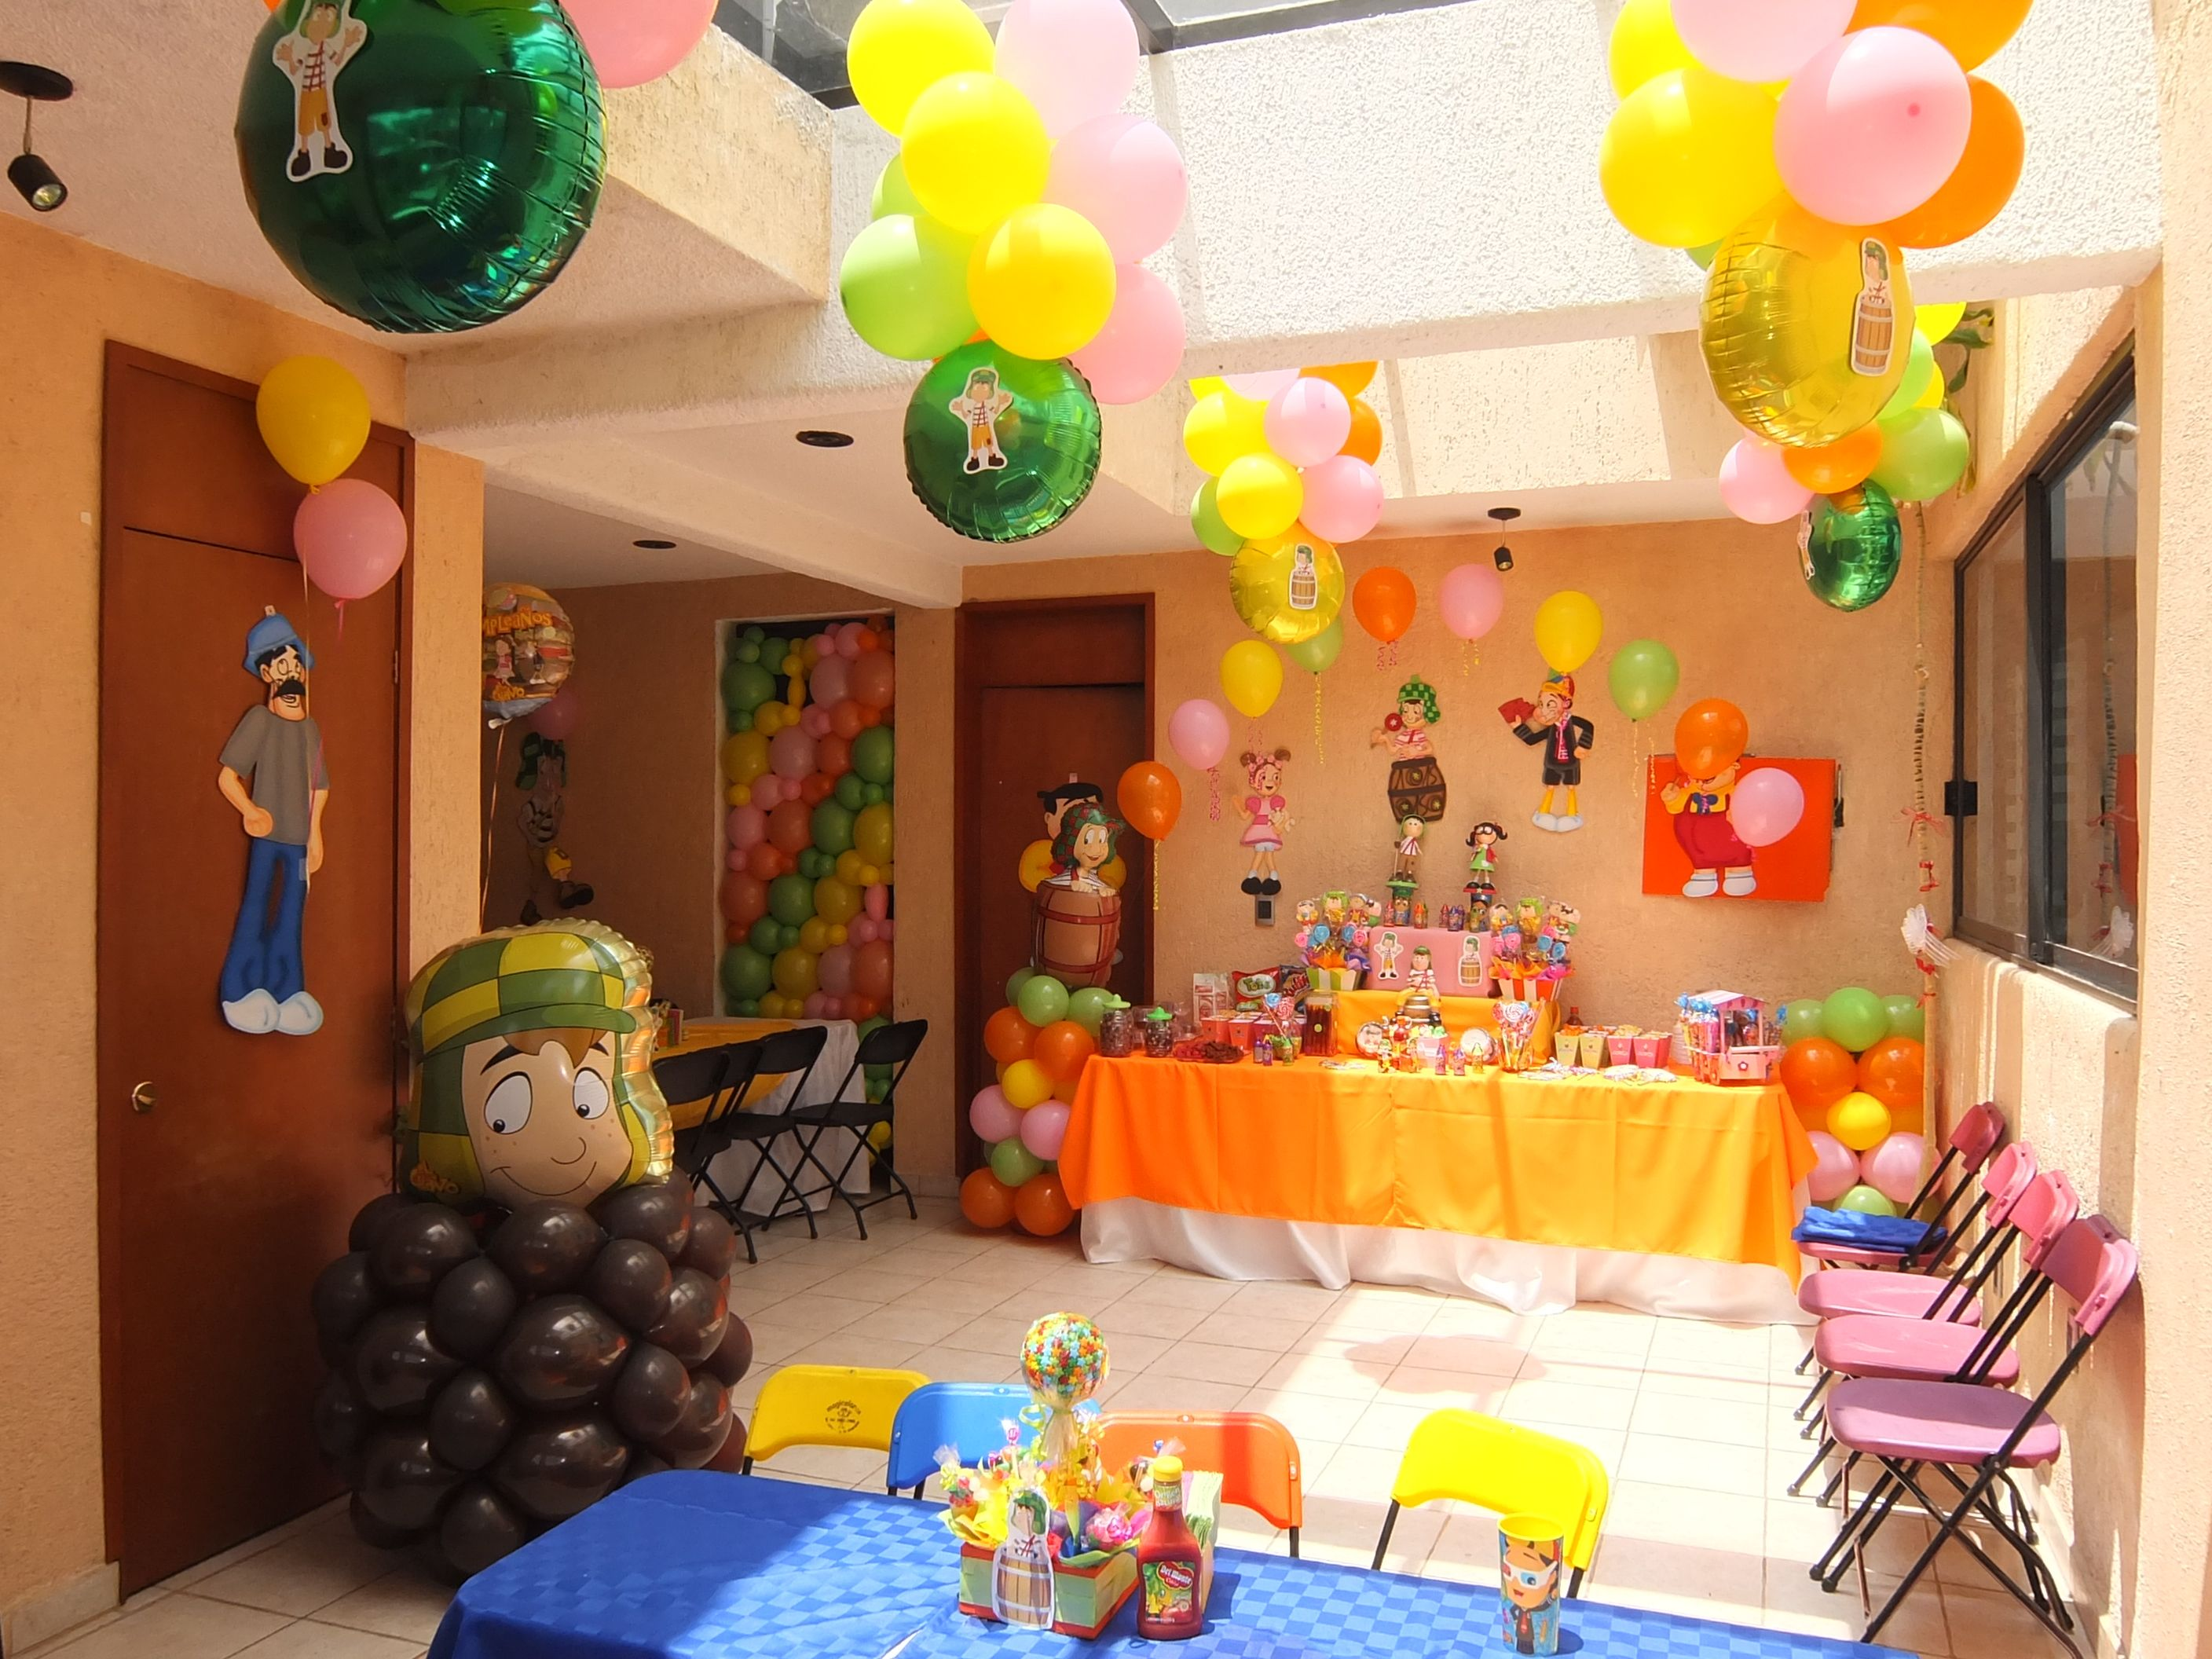 Decoracion fiesta sorpresa adulto fabulous decoracin - Decoracion fiesta sorpresa ...